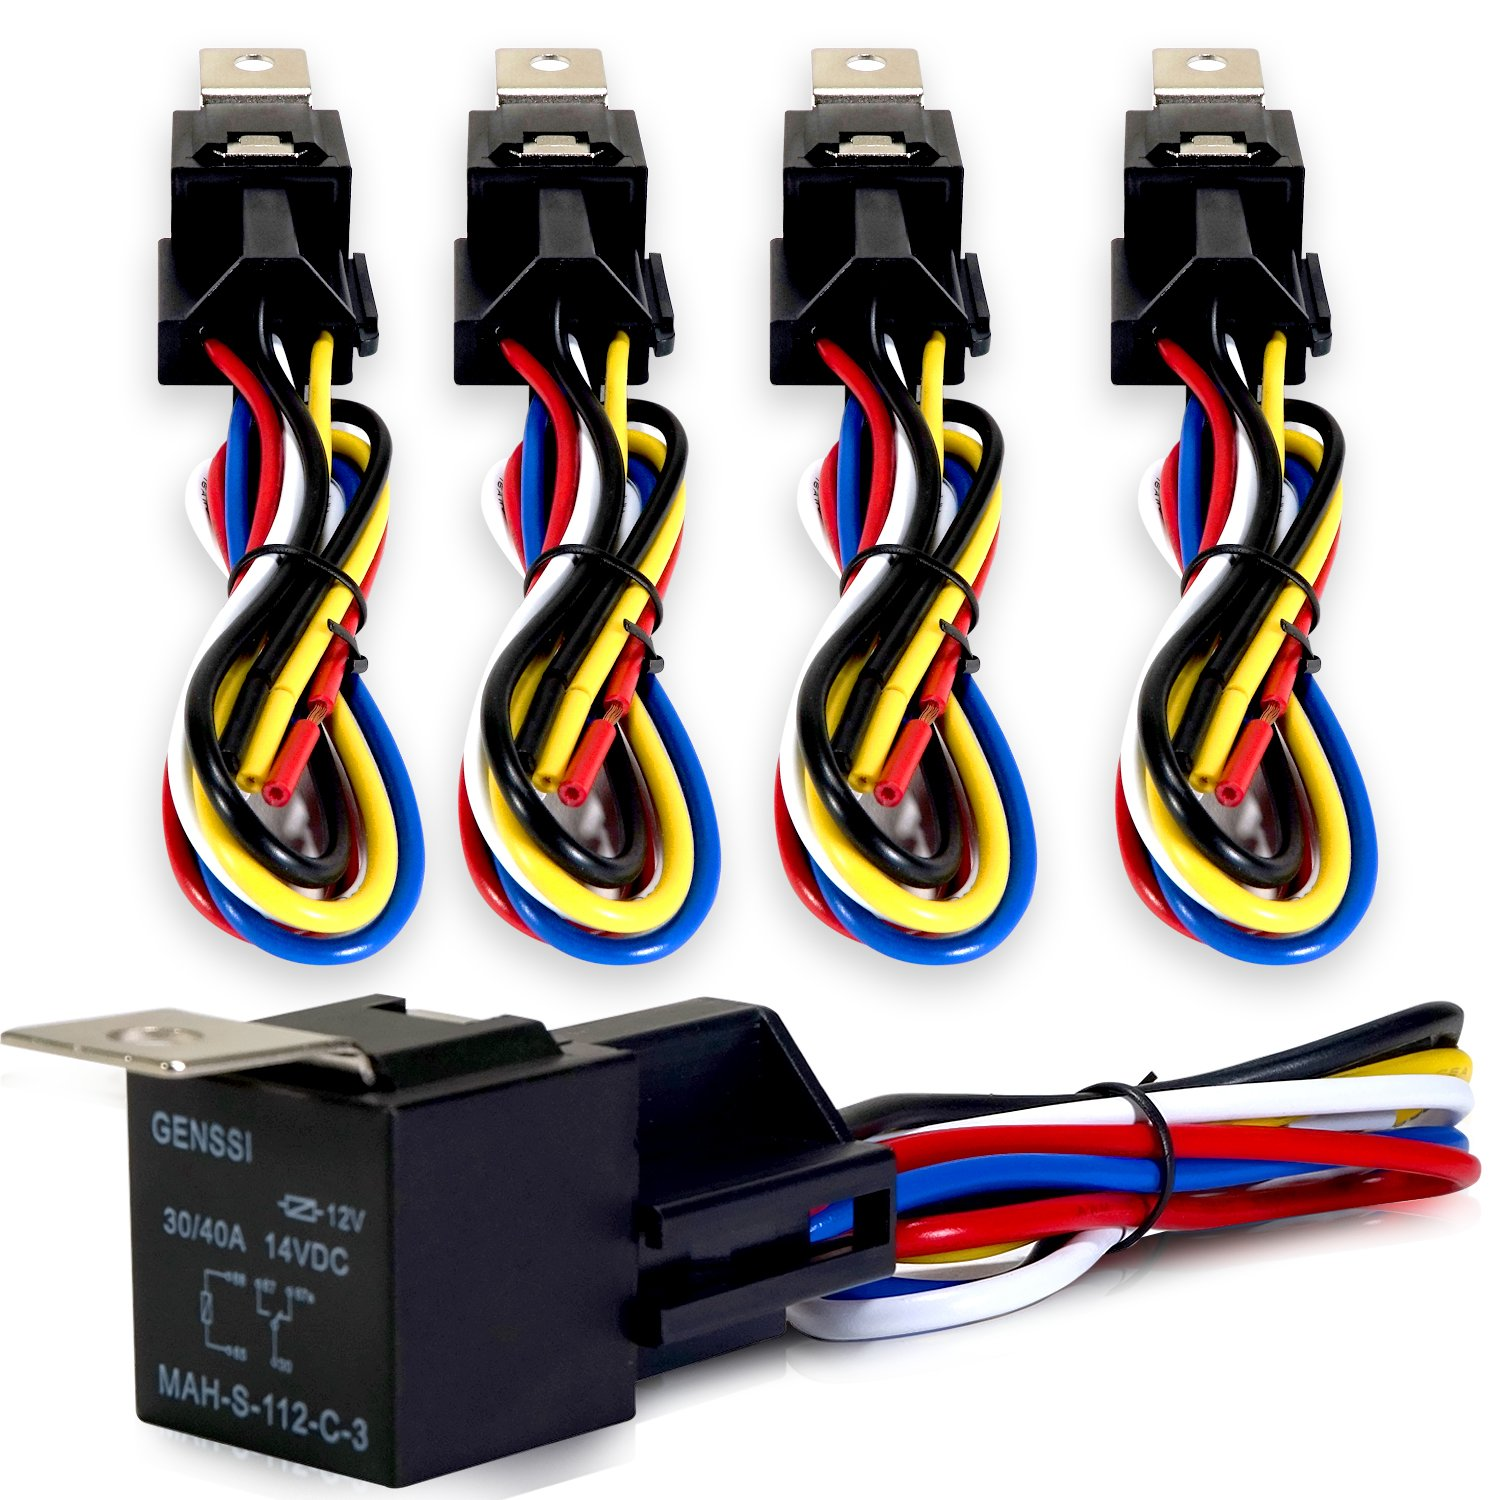 Buy Genssi 30 40 Amp Relay And Wire Harness Spdt 12v 40a Durable Composite Wiring Pack Of